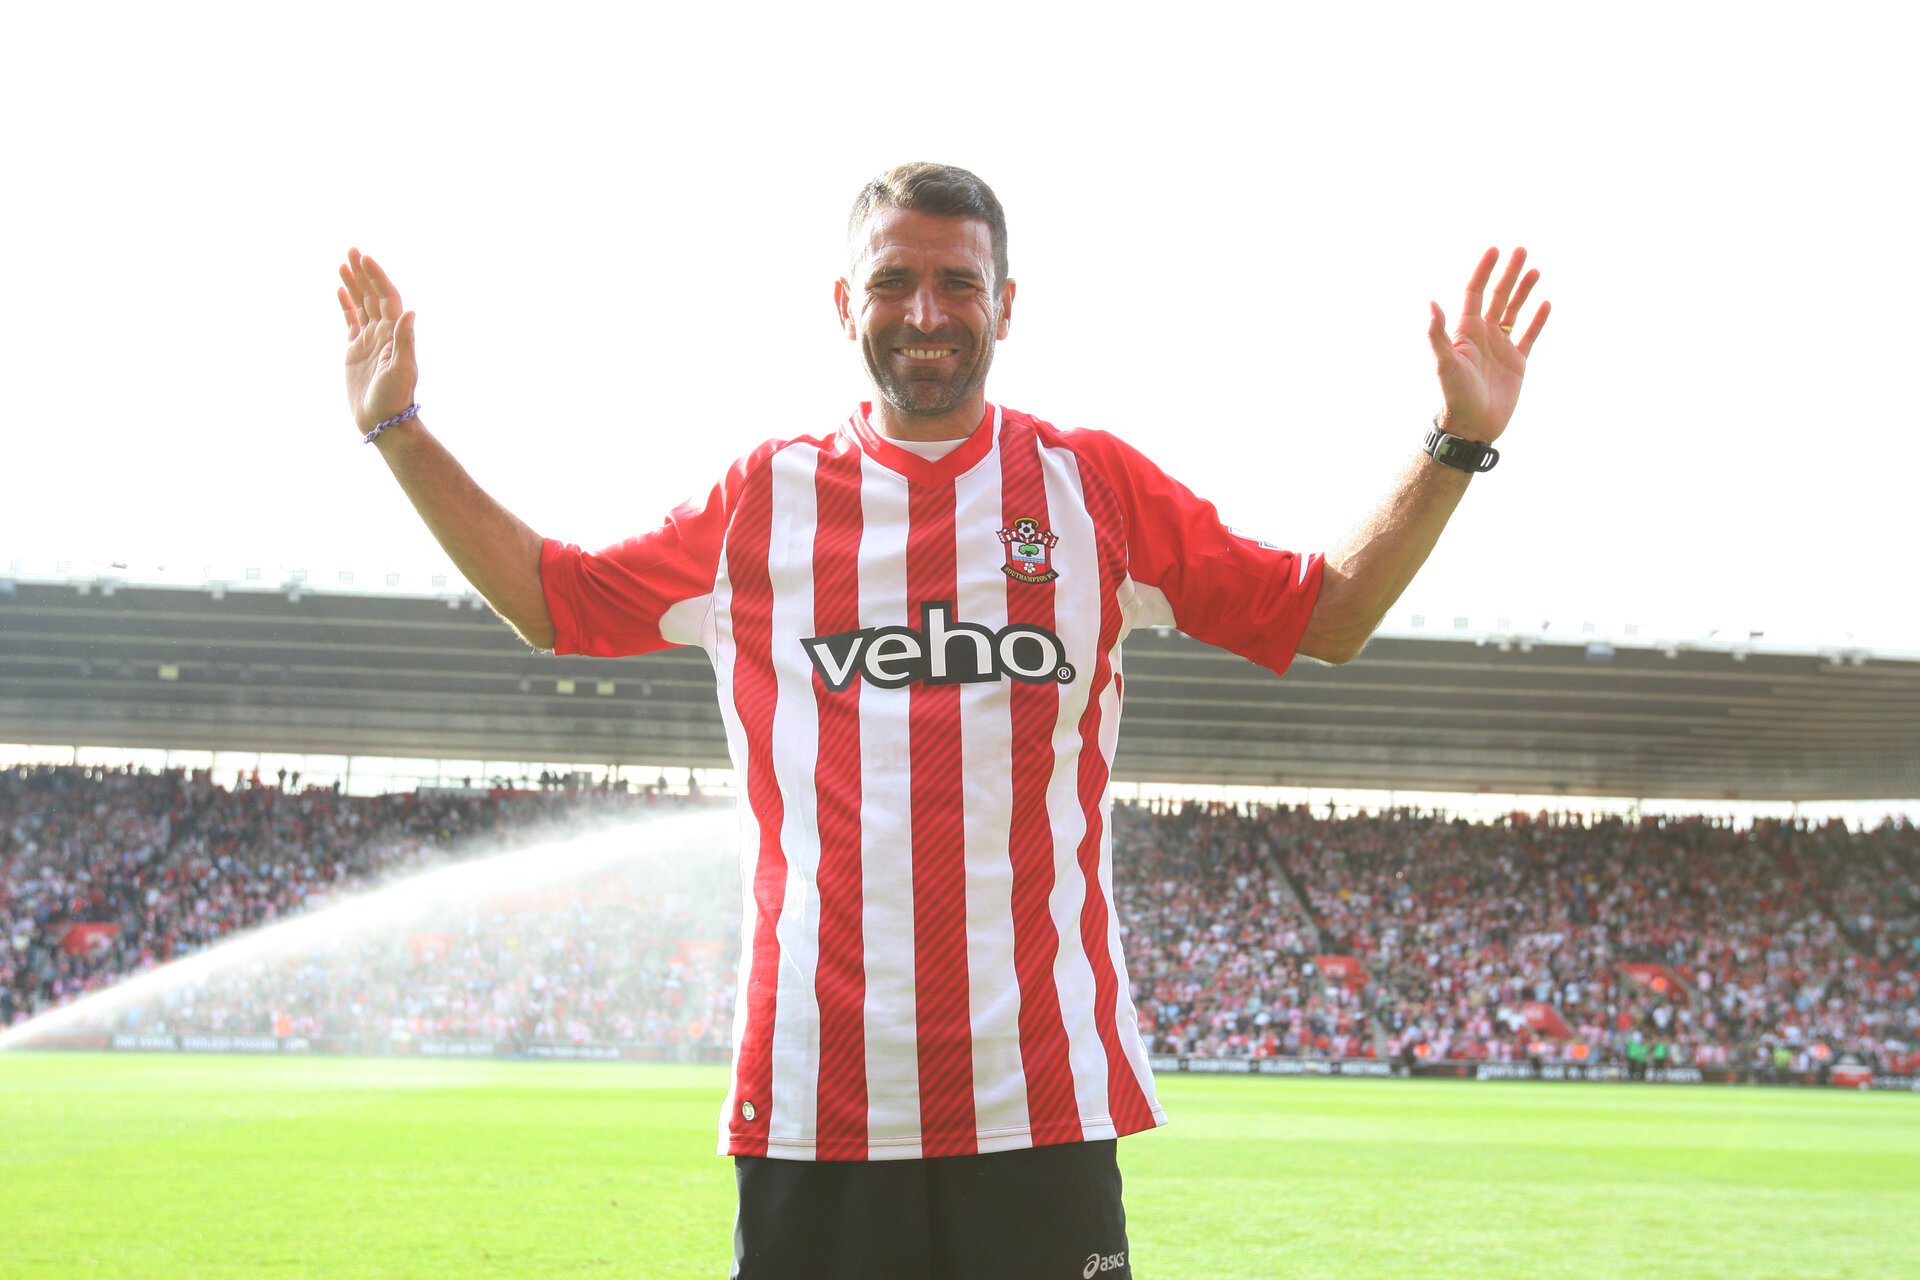 Ex Saint Francis Benali completes his 1000 mile charity run for Cancer Research UK- Barclays Premier League football - Southampton vs Newcastle United - St Mary's Stadium - Southampton - 13th September 2014 - Picture Matt Watson/Southampton FC